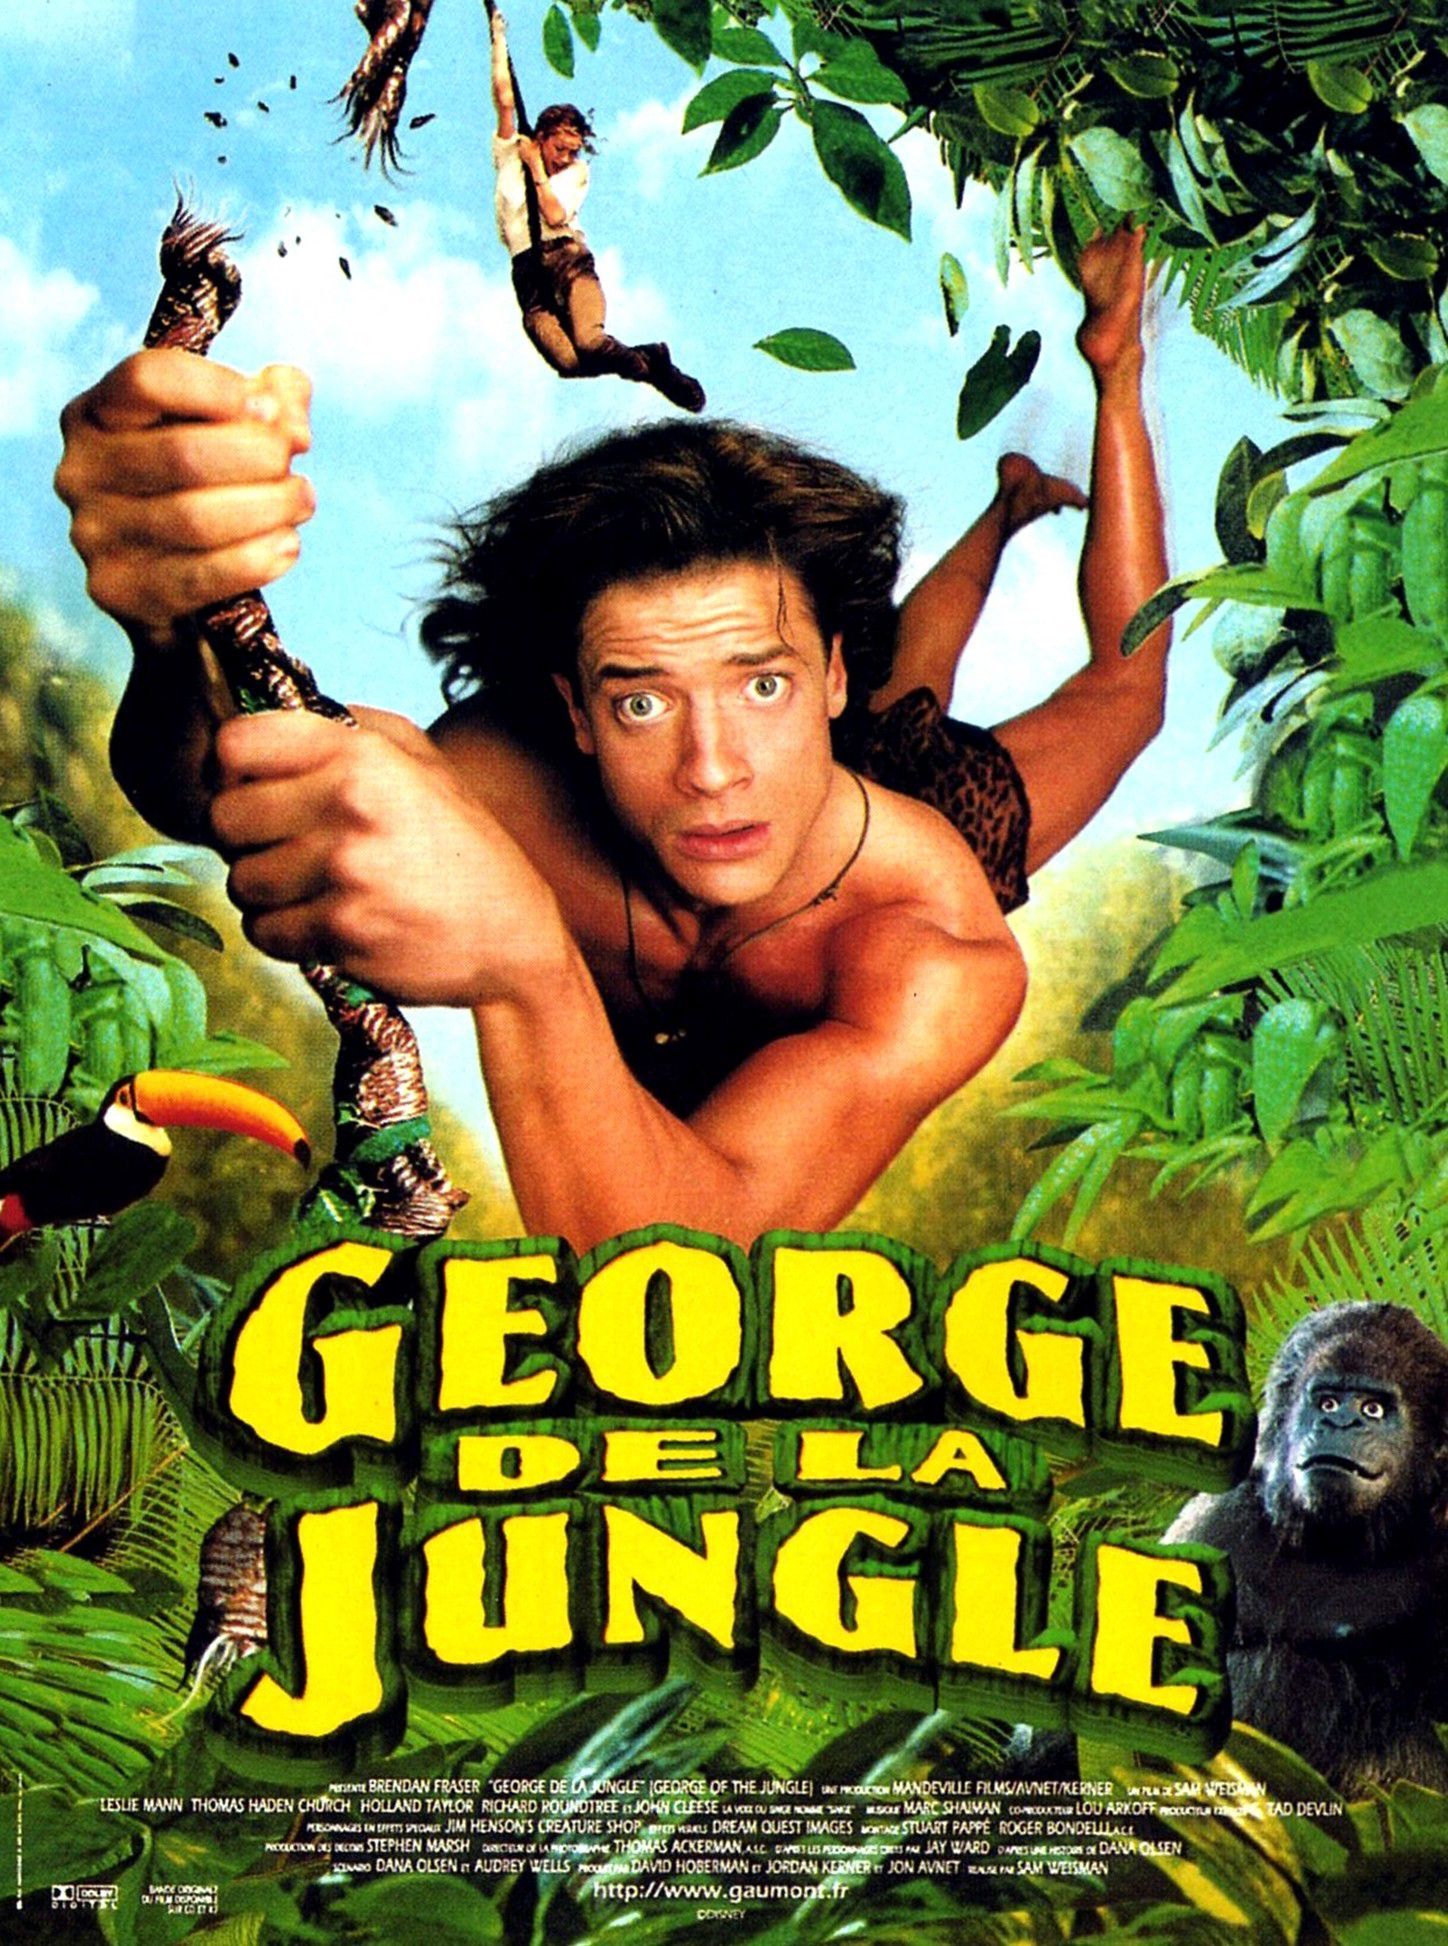 Affiche Poster george jungle disney